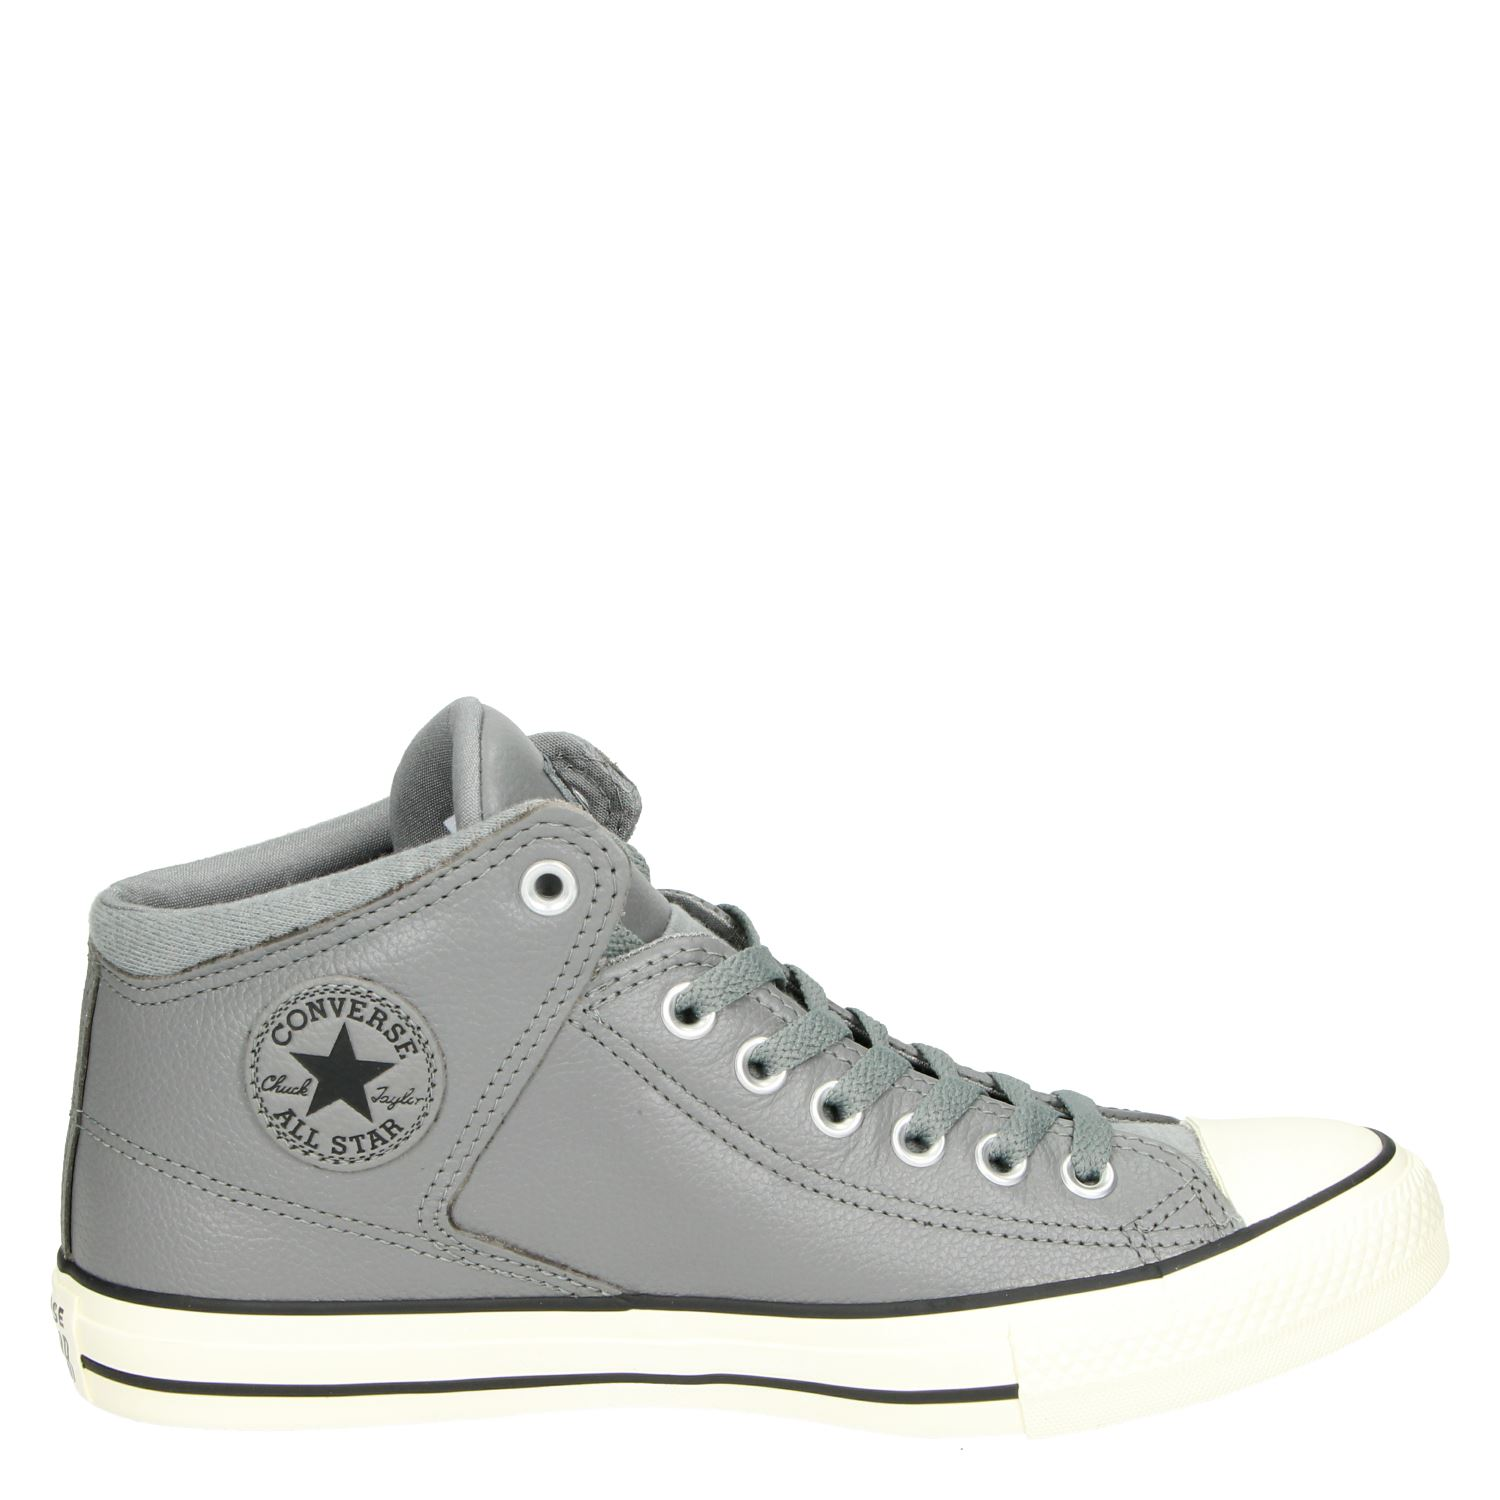 Converse All Star High Street